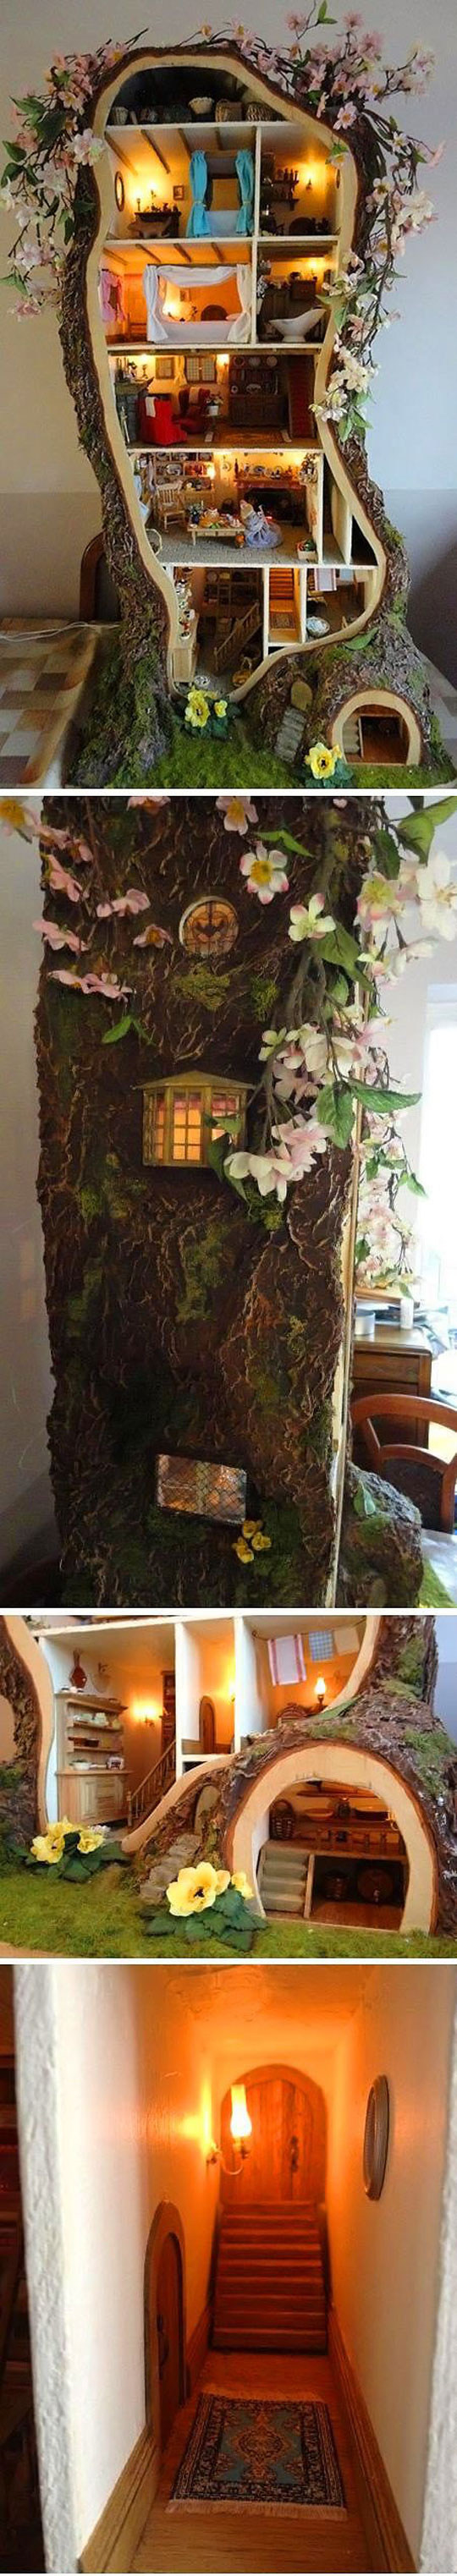 cool-mouse-house-toys-wood